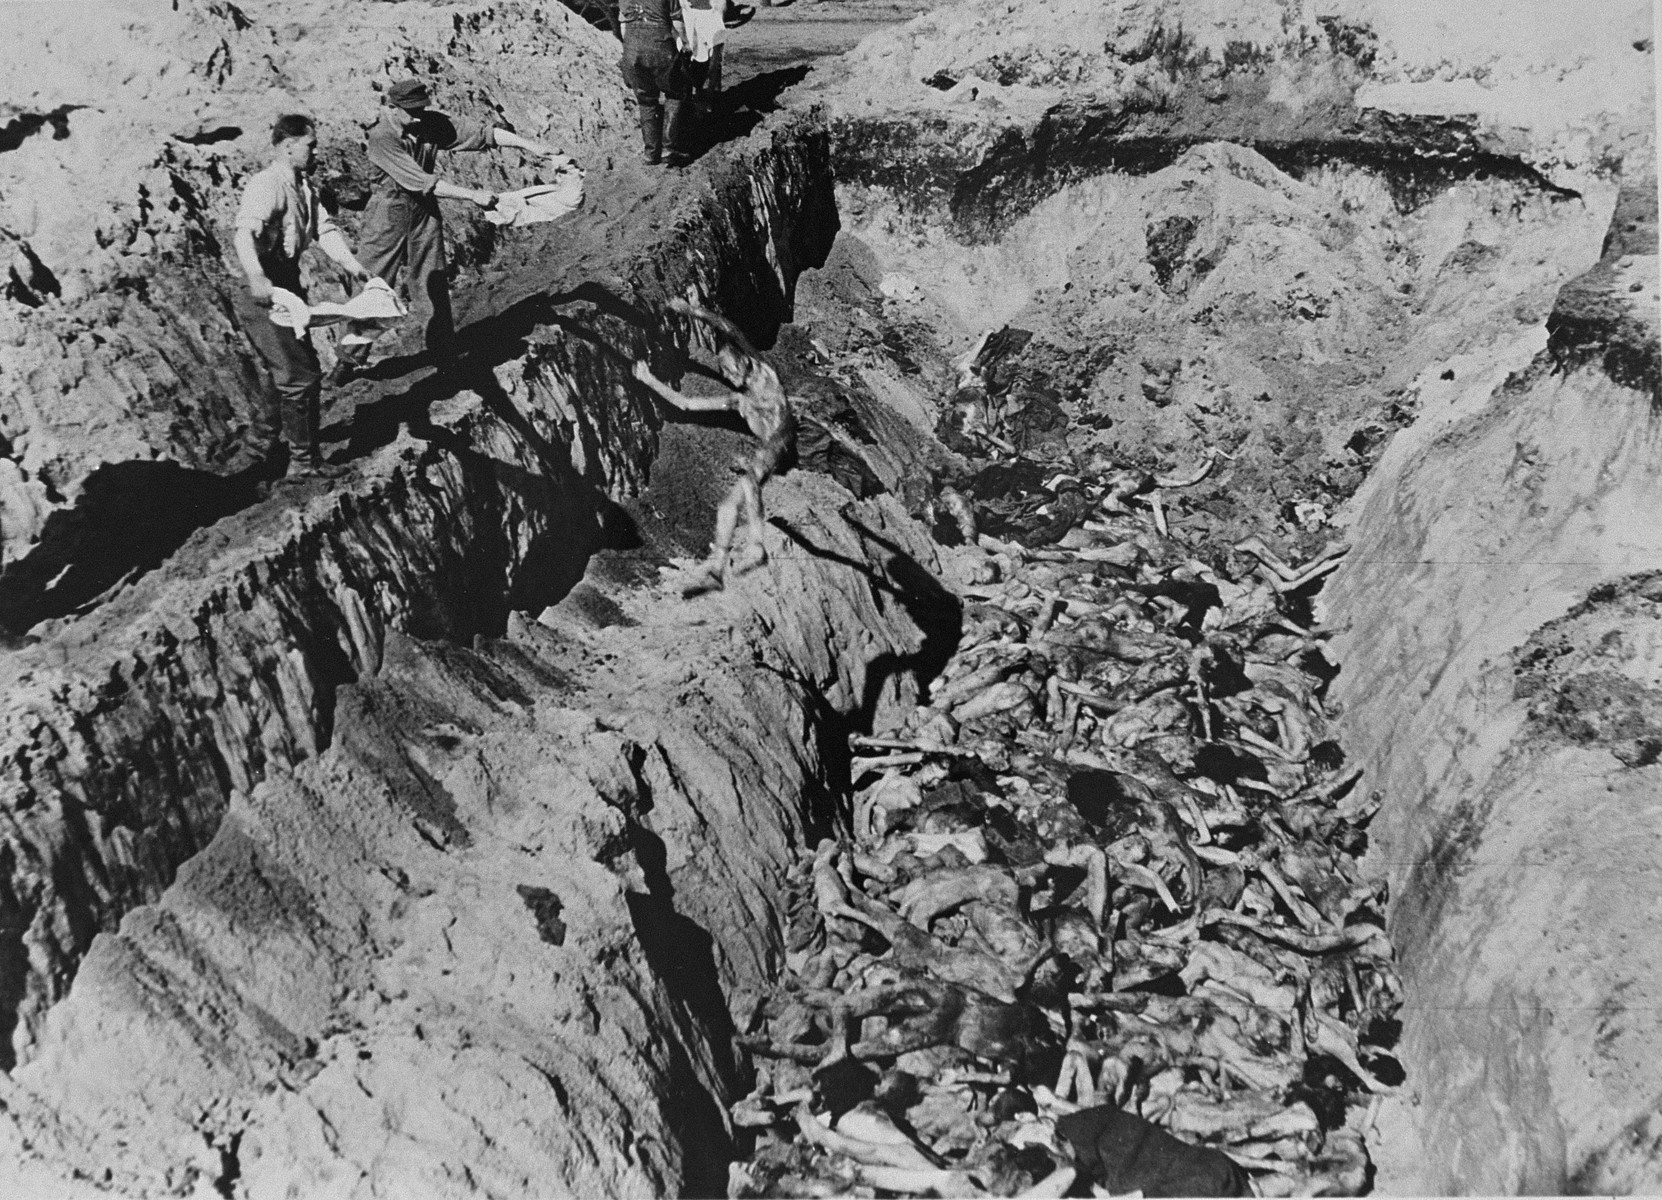 Former SS guards bury  corpses of prisoners in a mass grave in Bergen-Belsen concentration camp.